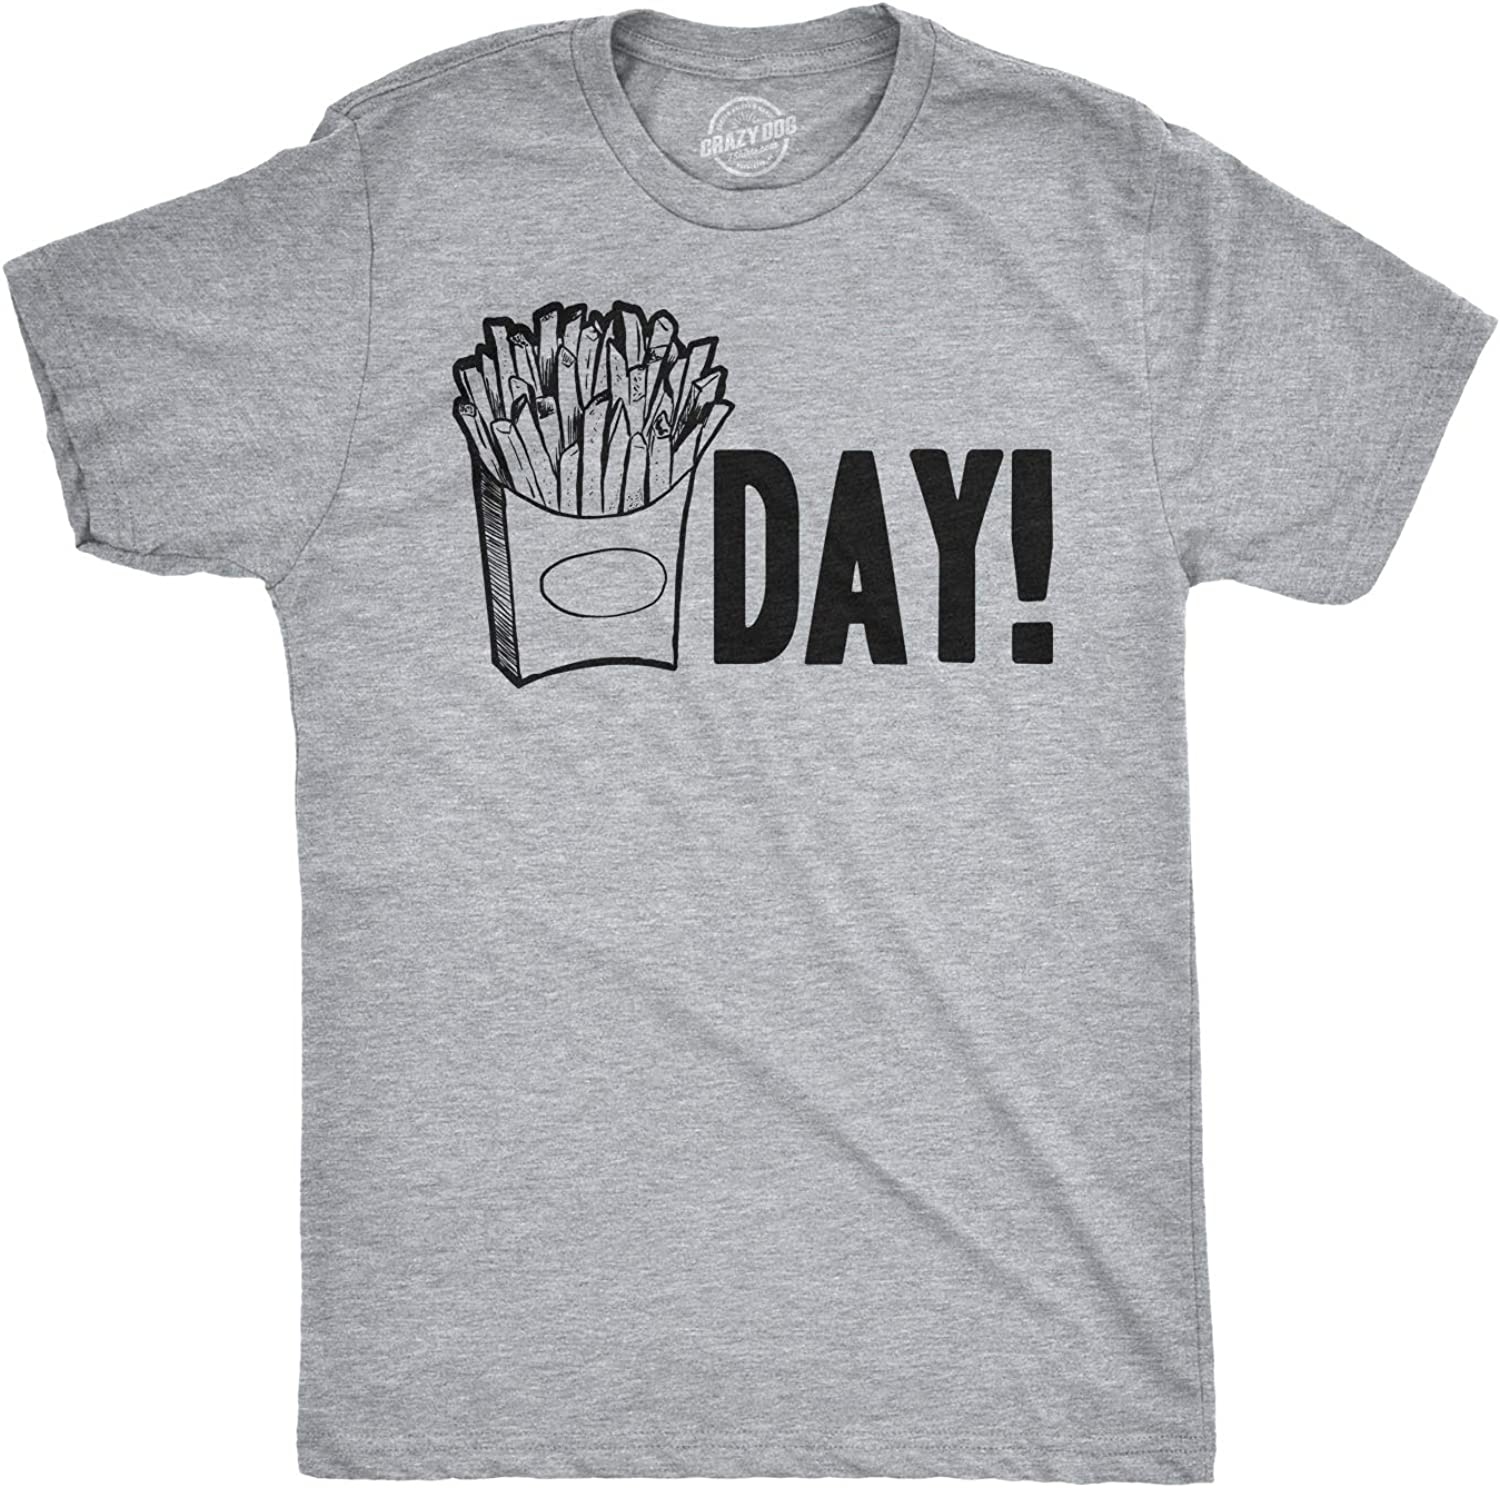 Crazy Dog T-Shirts Mens Fry Day Friday T Shirt Funny Fast Food French Fry Weekend TGIF Tee